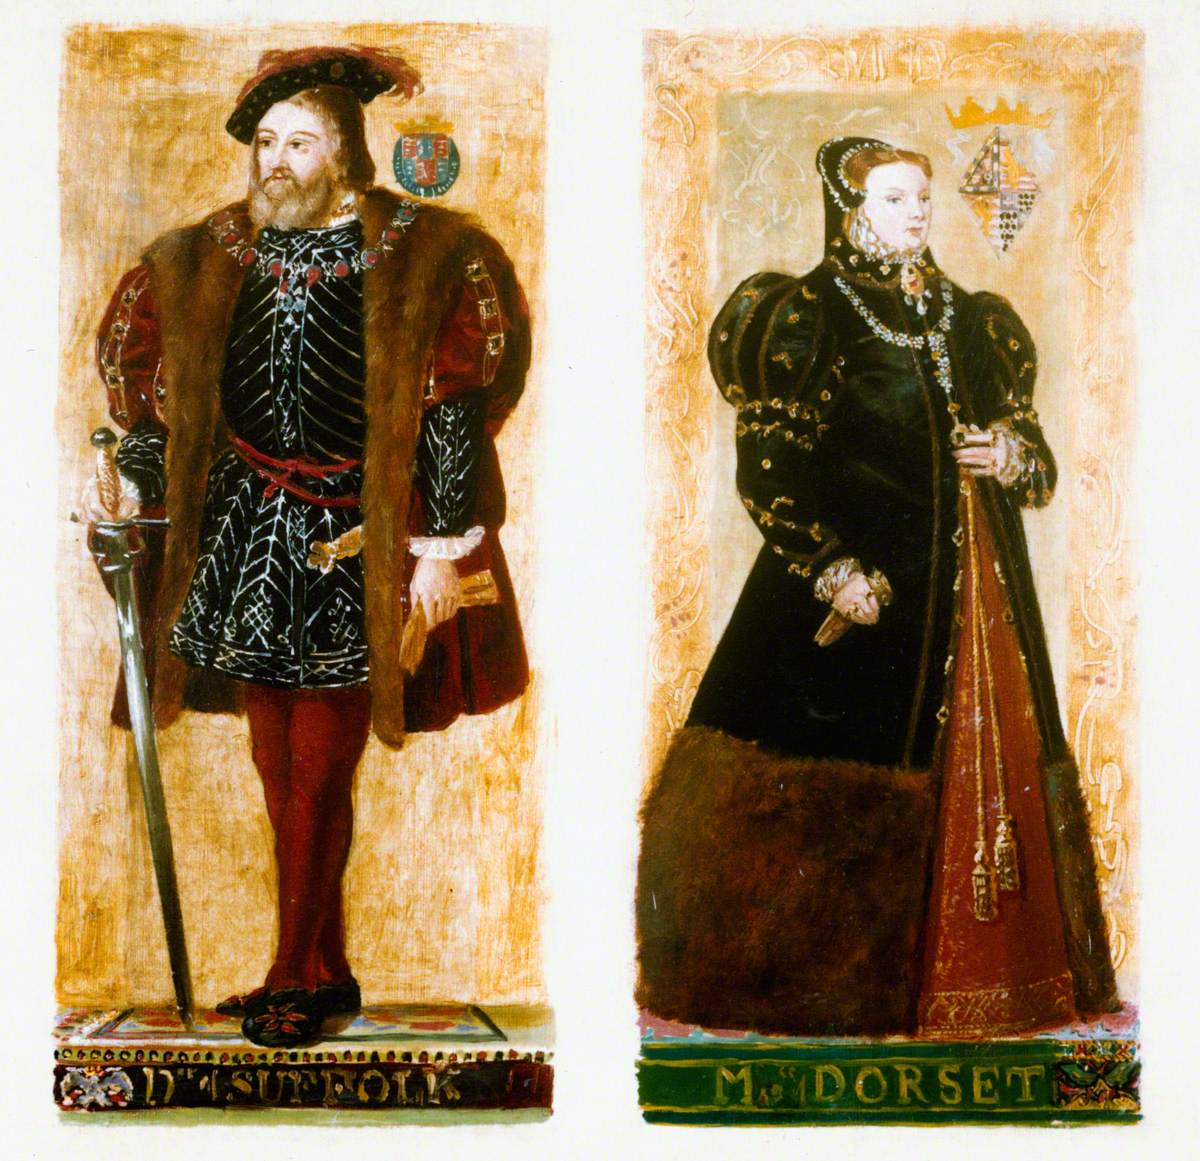 Preparatory Sketches of Duke of Suffolk and Marchioness of Dorset